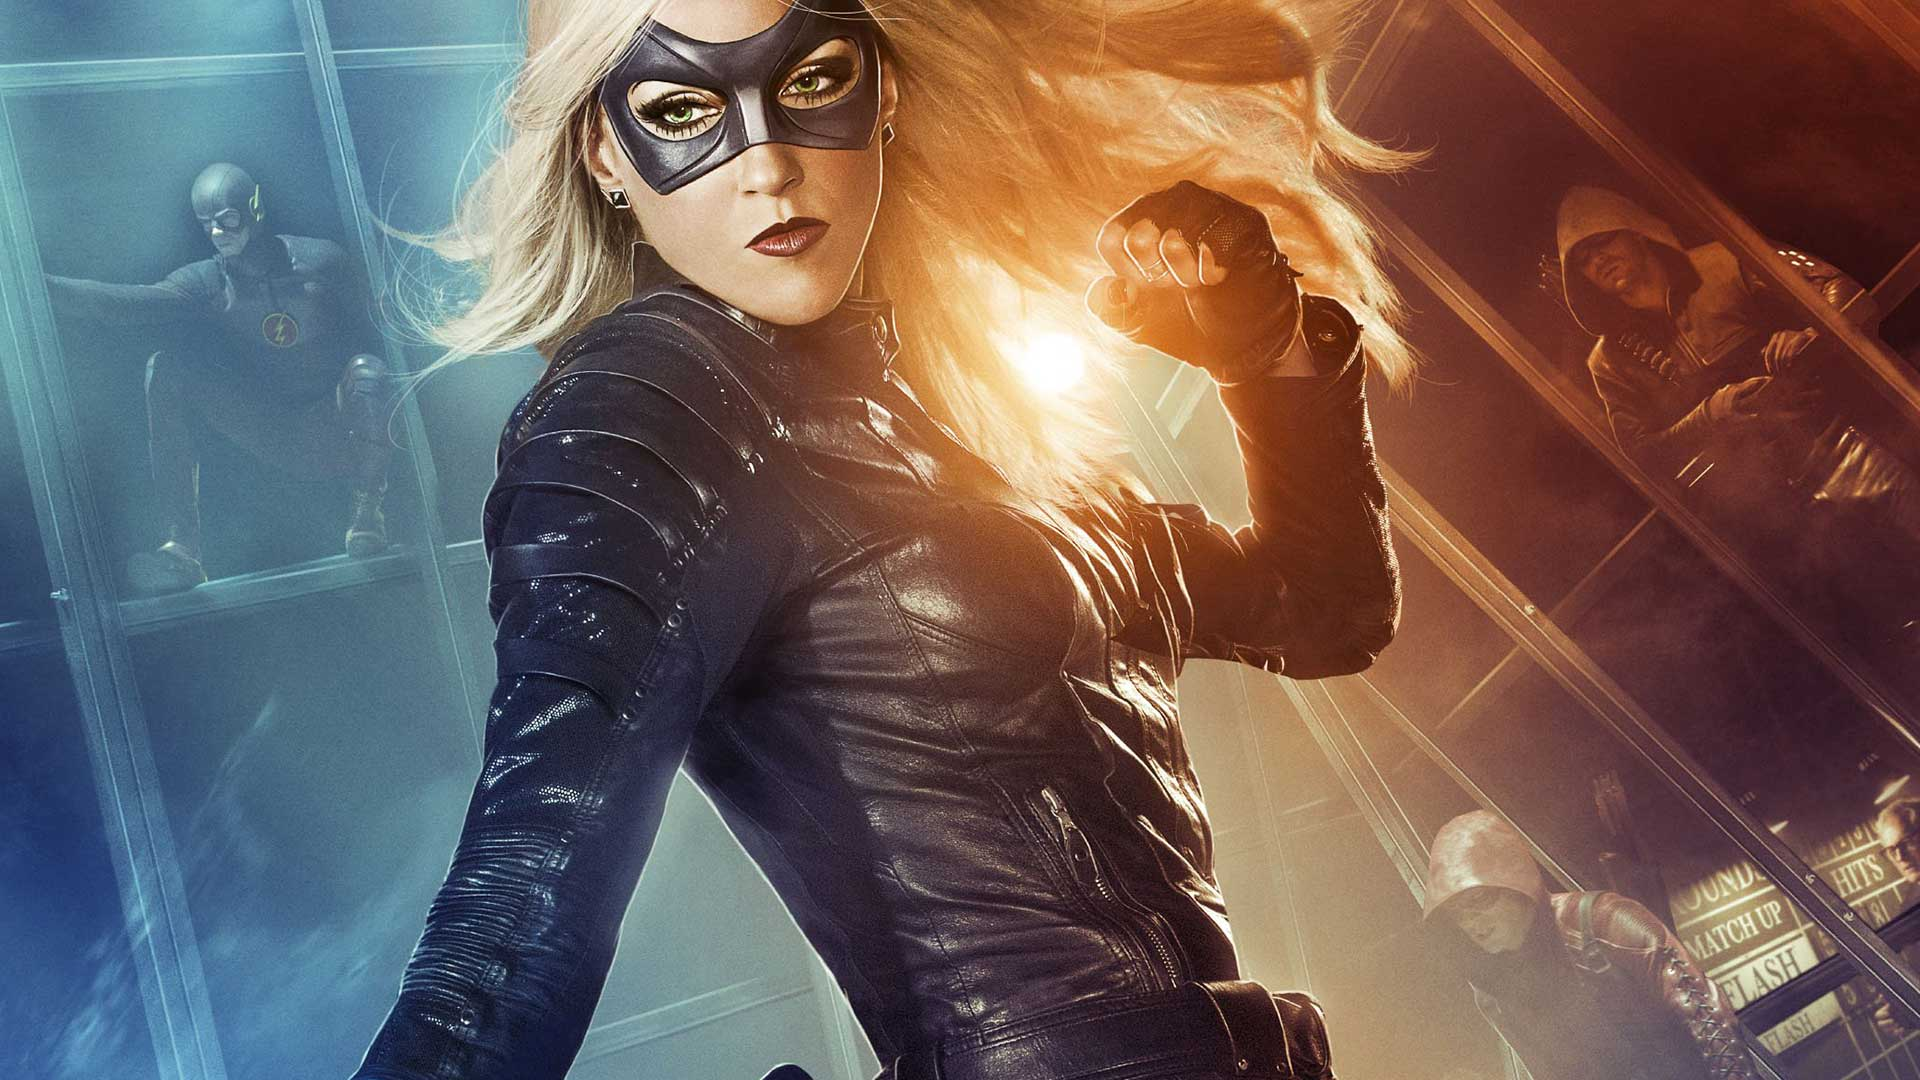 Arrow Season 5 Spoilers Laurel Lance Alive In Midseason Premiere How Black Canary S Legacy Will Live On Player One